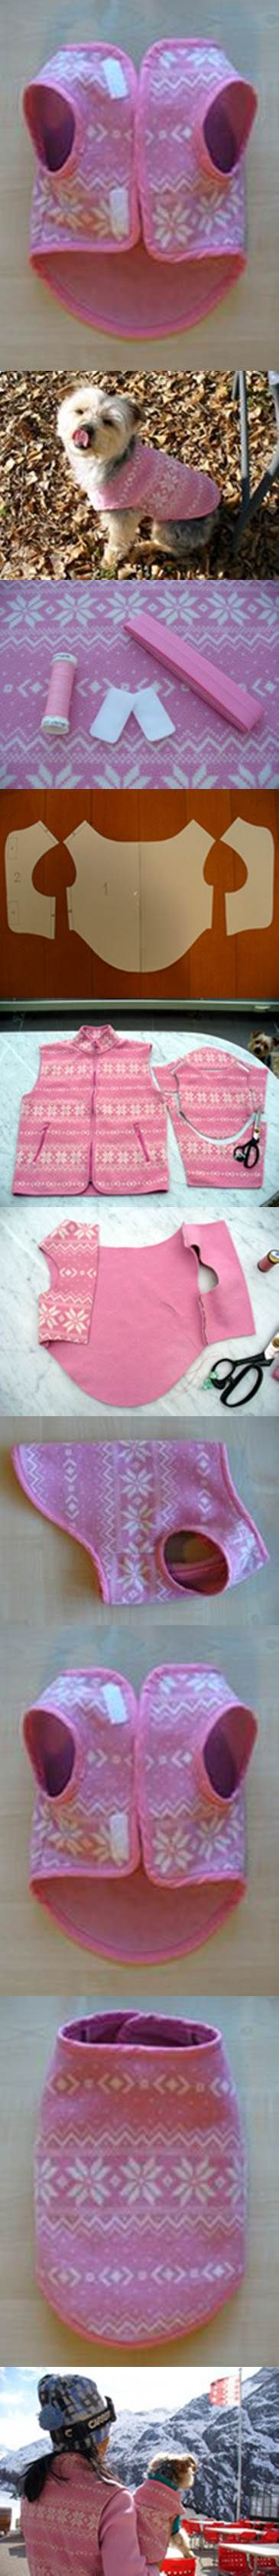 DIY Easy Dog Fleece Jacket 2: